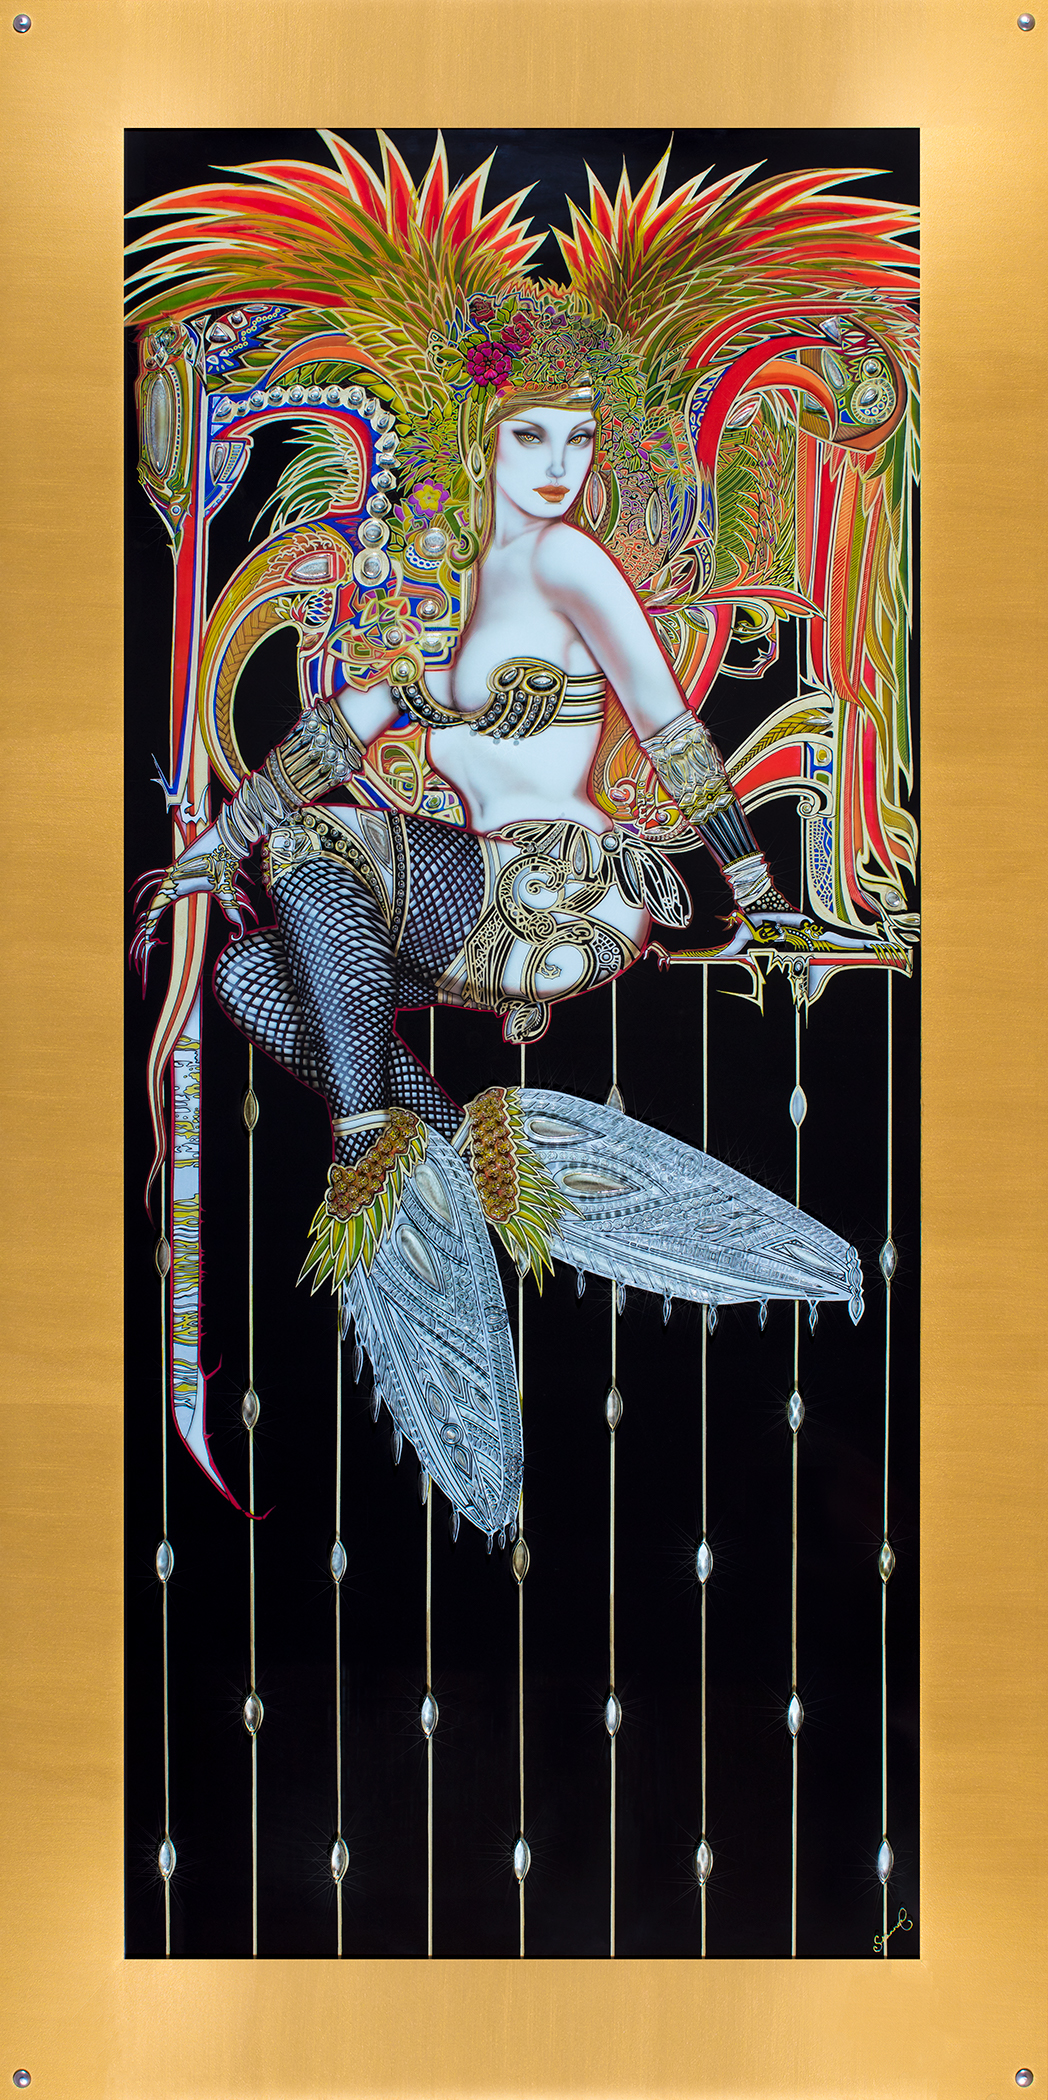 "firefly - Size: 43"" Wide x 86.5"" HighMaterials: Life Size Giclee Print, Original Carved Glass, Embellished with Mixed MediaAbout the Piece: Firefly is a burlesque fairy creature, whose form combines the seductive form of a temptress with unique insect-like elements and jewelry all accented by the carved glass in the front. The original image was created using paint, gold leaf, pen and ink, and airbrushed liquid graphite on glass."